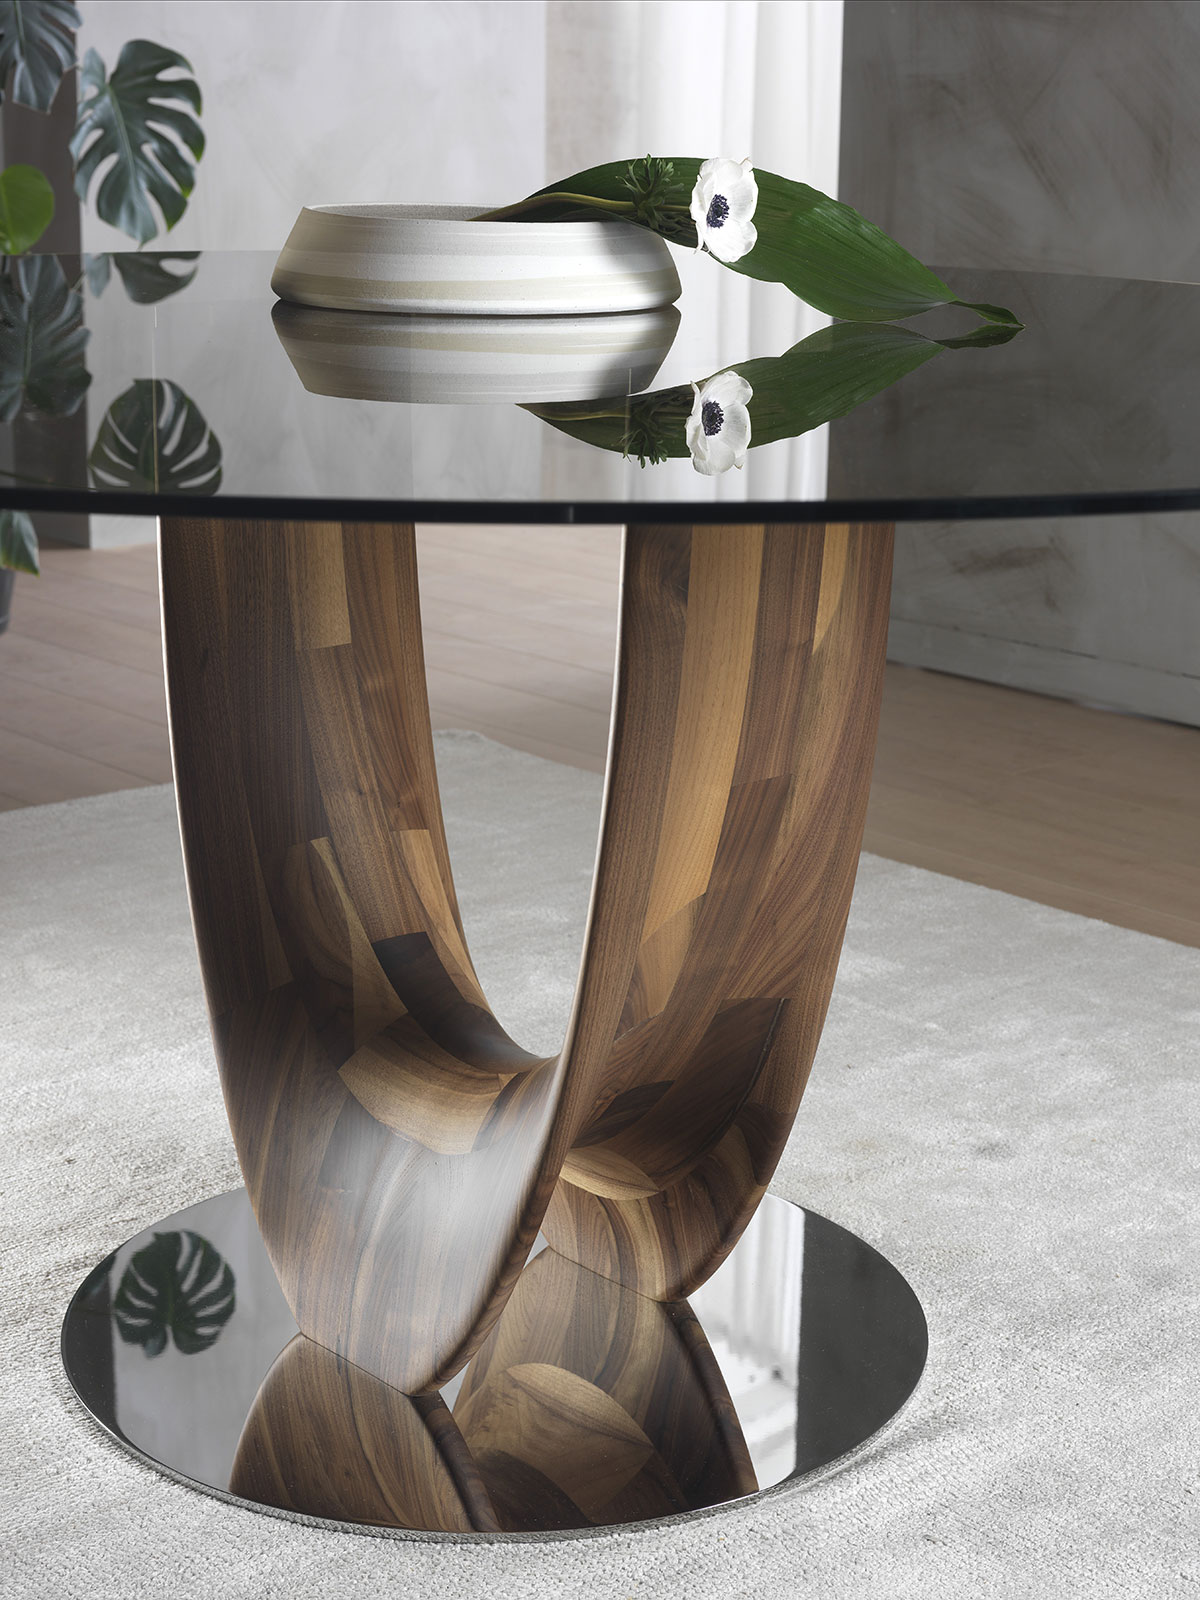 Round table designed by Stefano Bigi. Glass top. Walnut wood base. Available for online shopping. Free delivery.